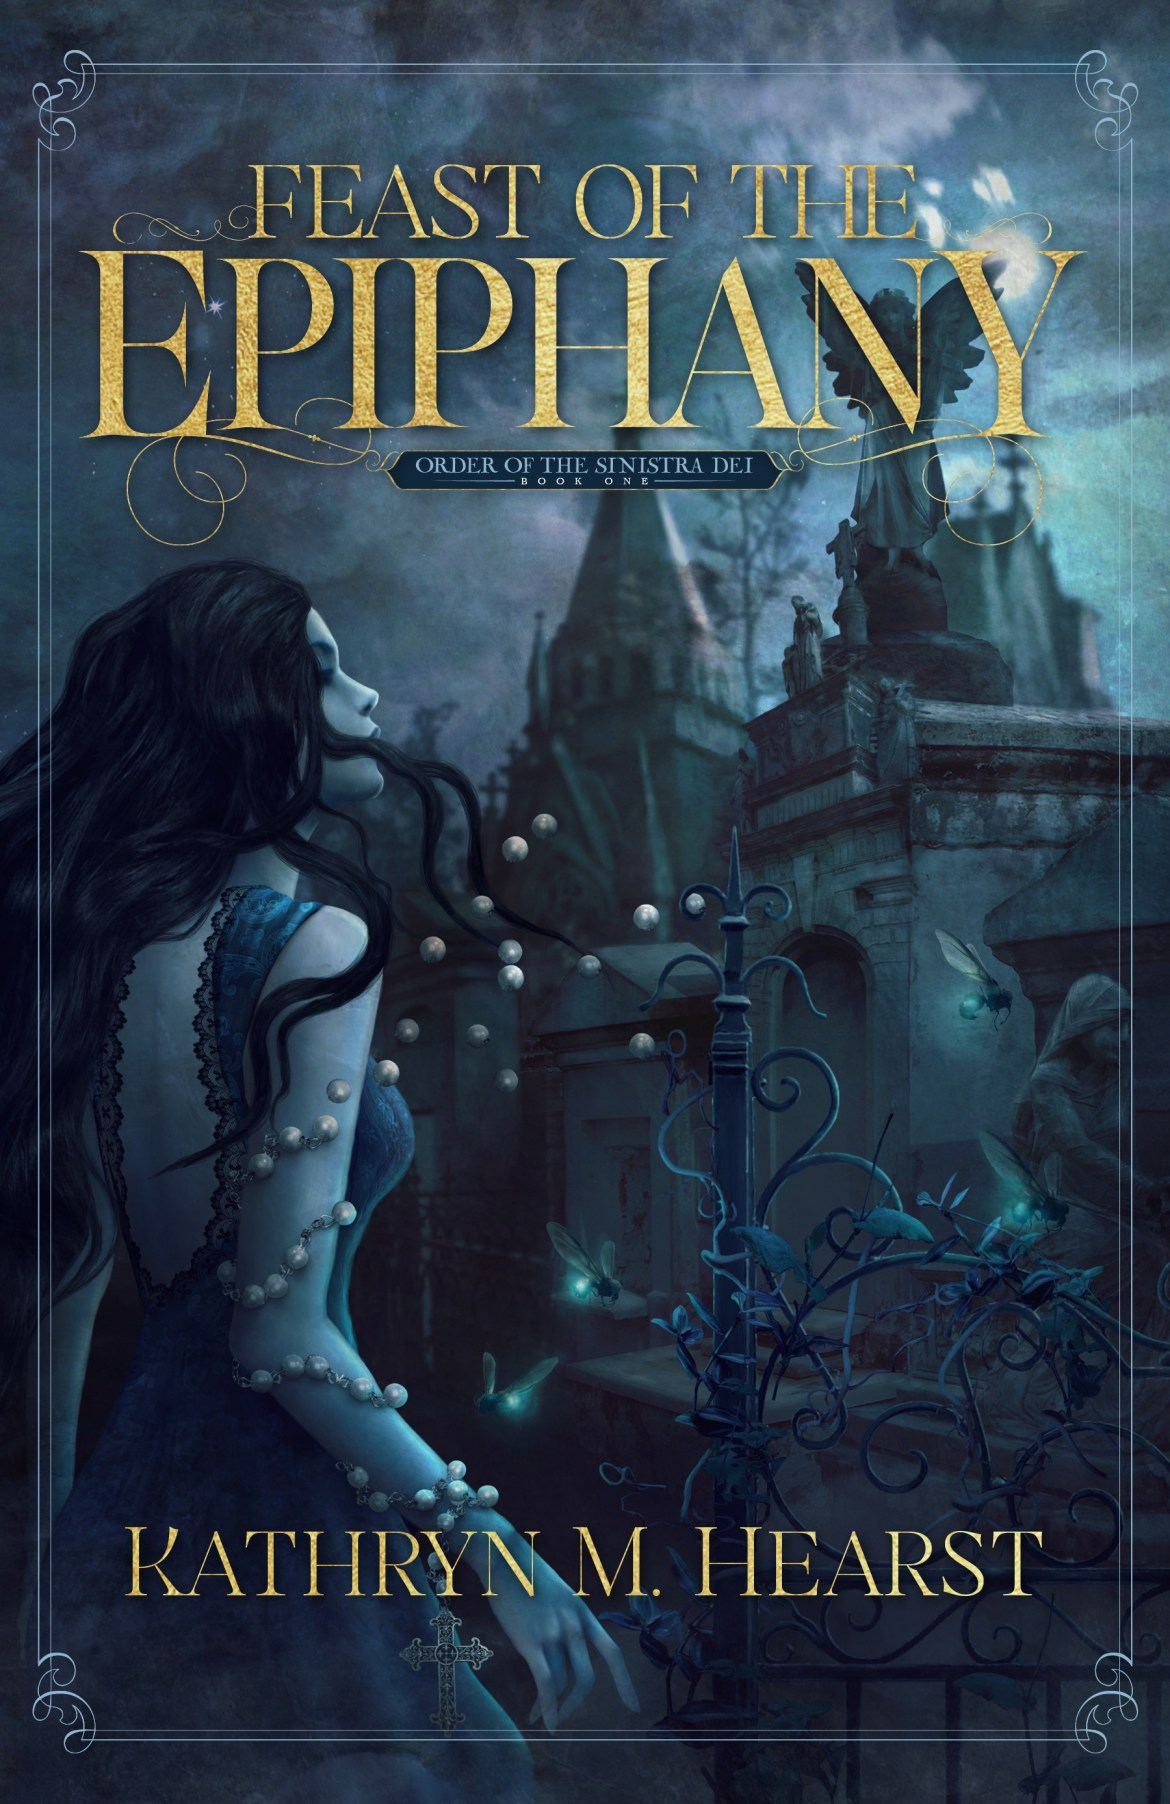 Feast_Epiphany-Cover-front only